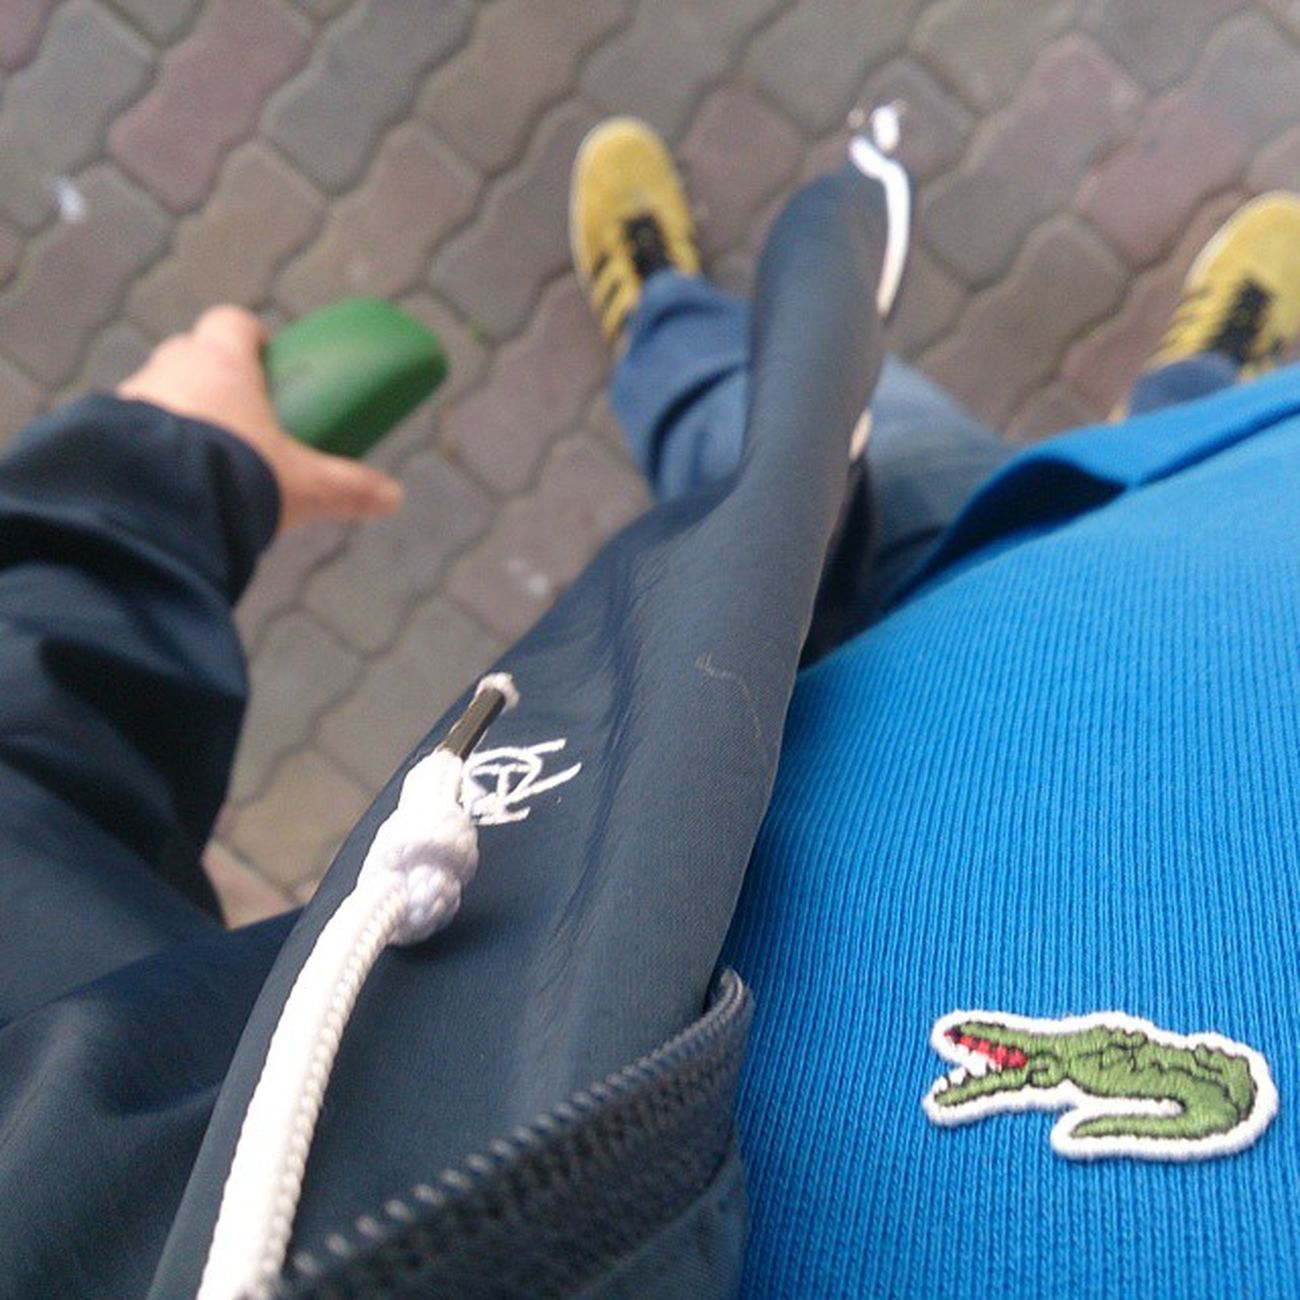 Matchdayclobber Marchday Lacoste Penguin Gazelles085 Adidasgazelles